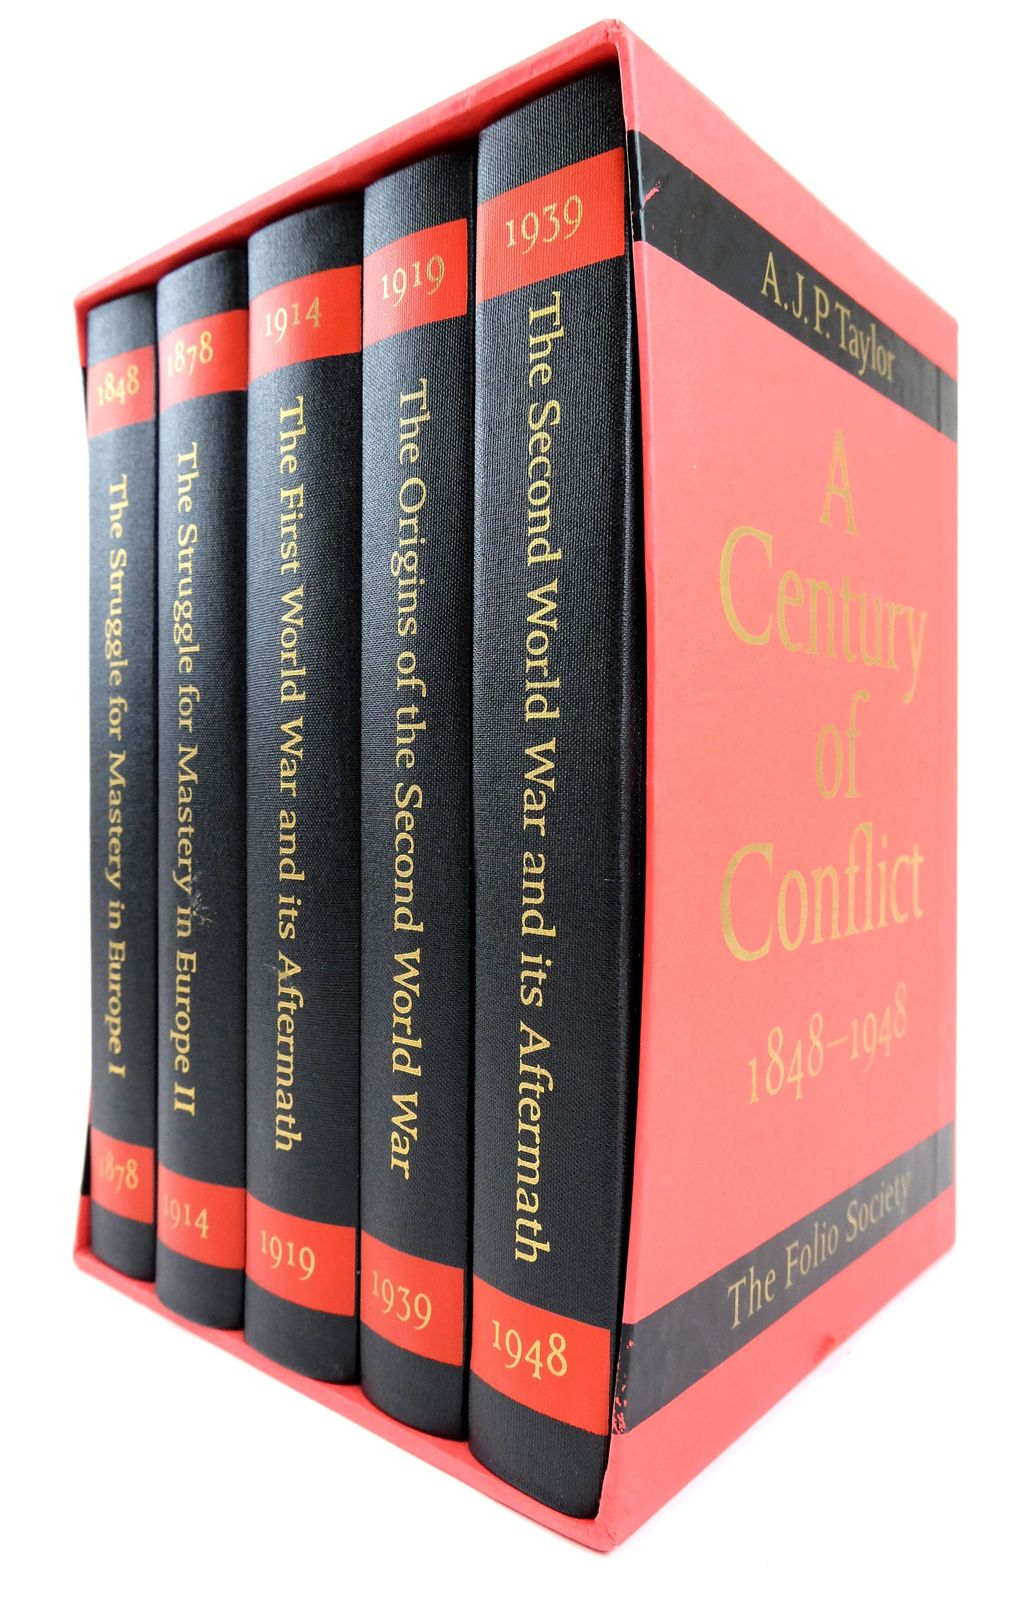 Photo of A CENTURY OF CONFLICT 1848-1948 (5 VOLUMES) written by Taylor, A.J.P. published by Folio Society (STOCK CODE: 1819239)  for sale by Stella & Rose's Books